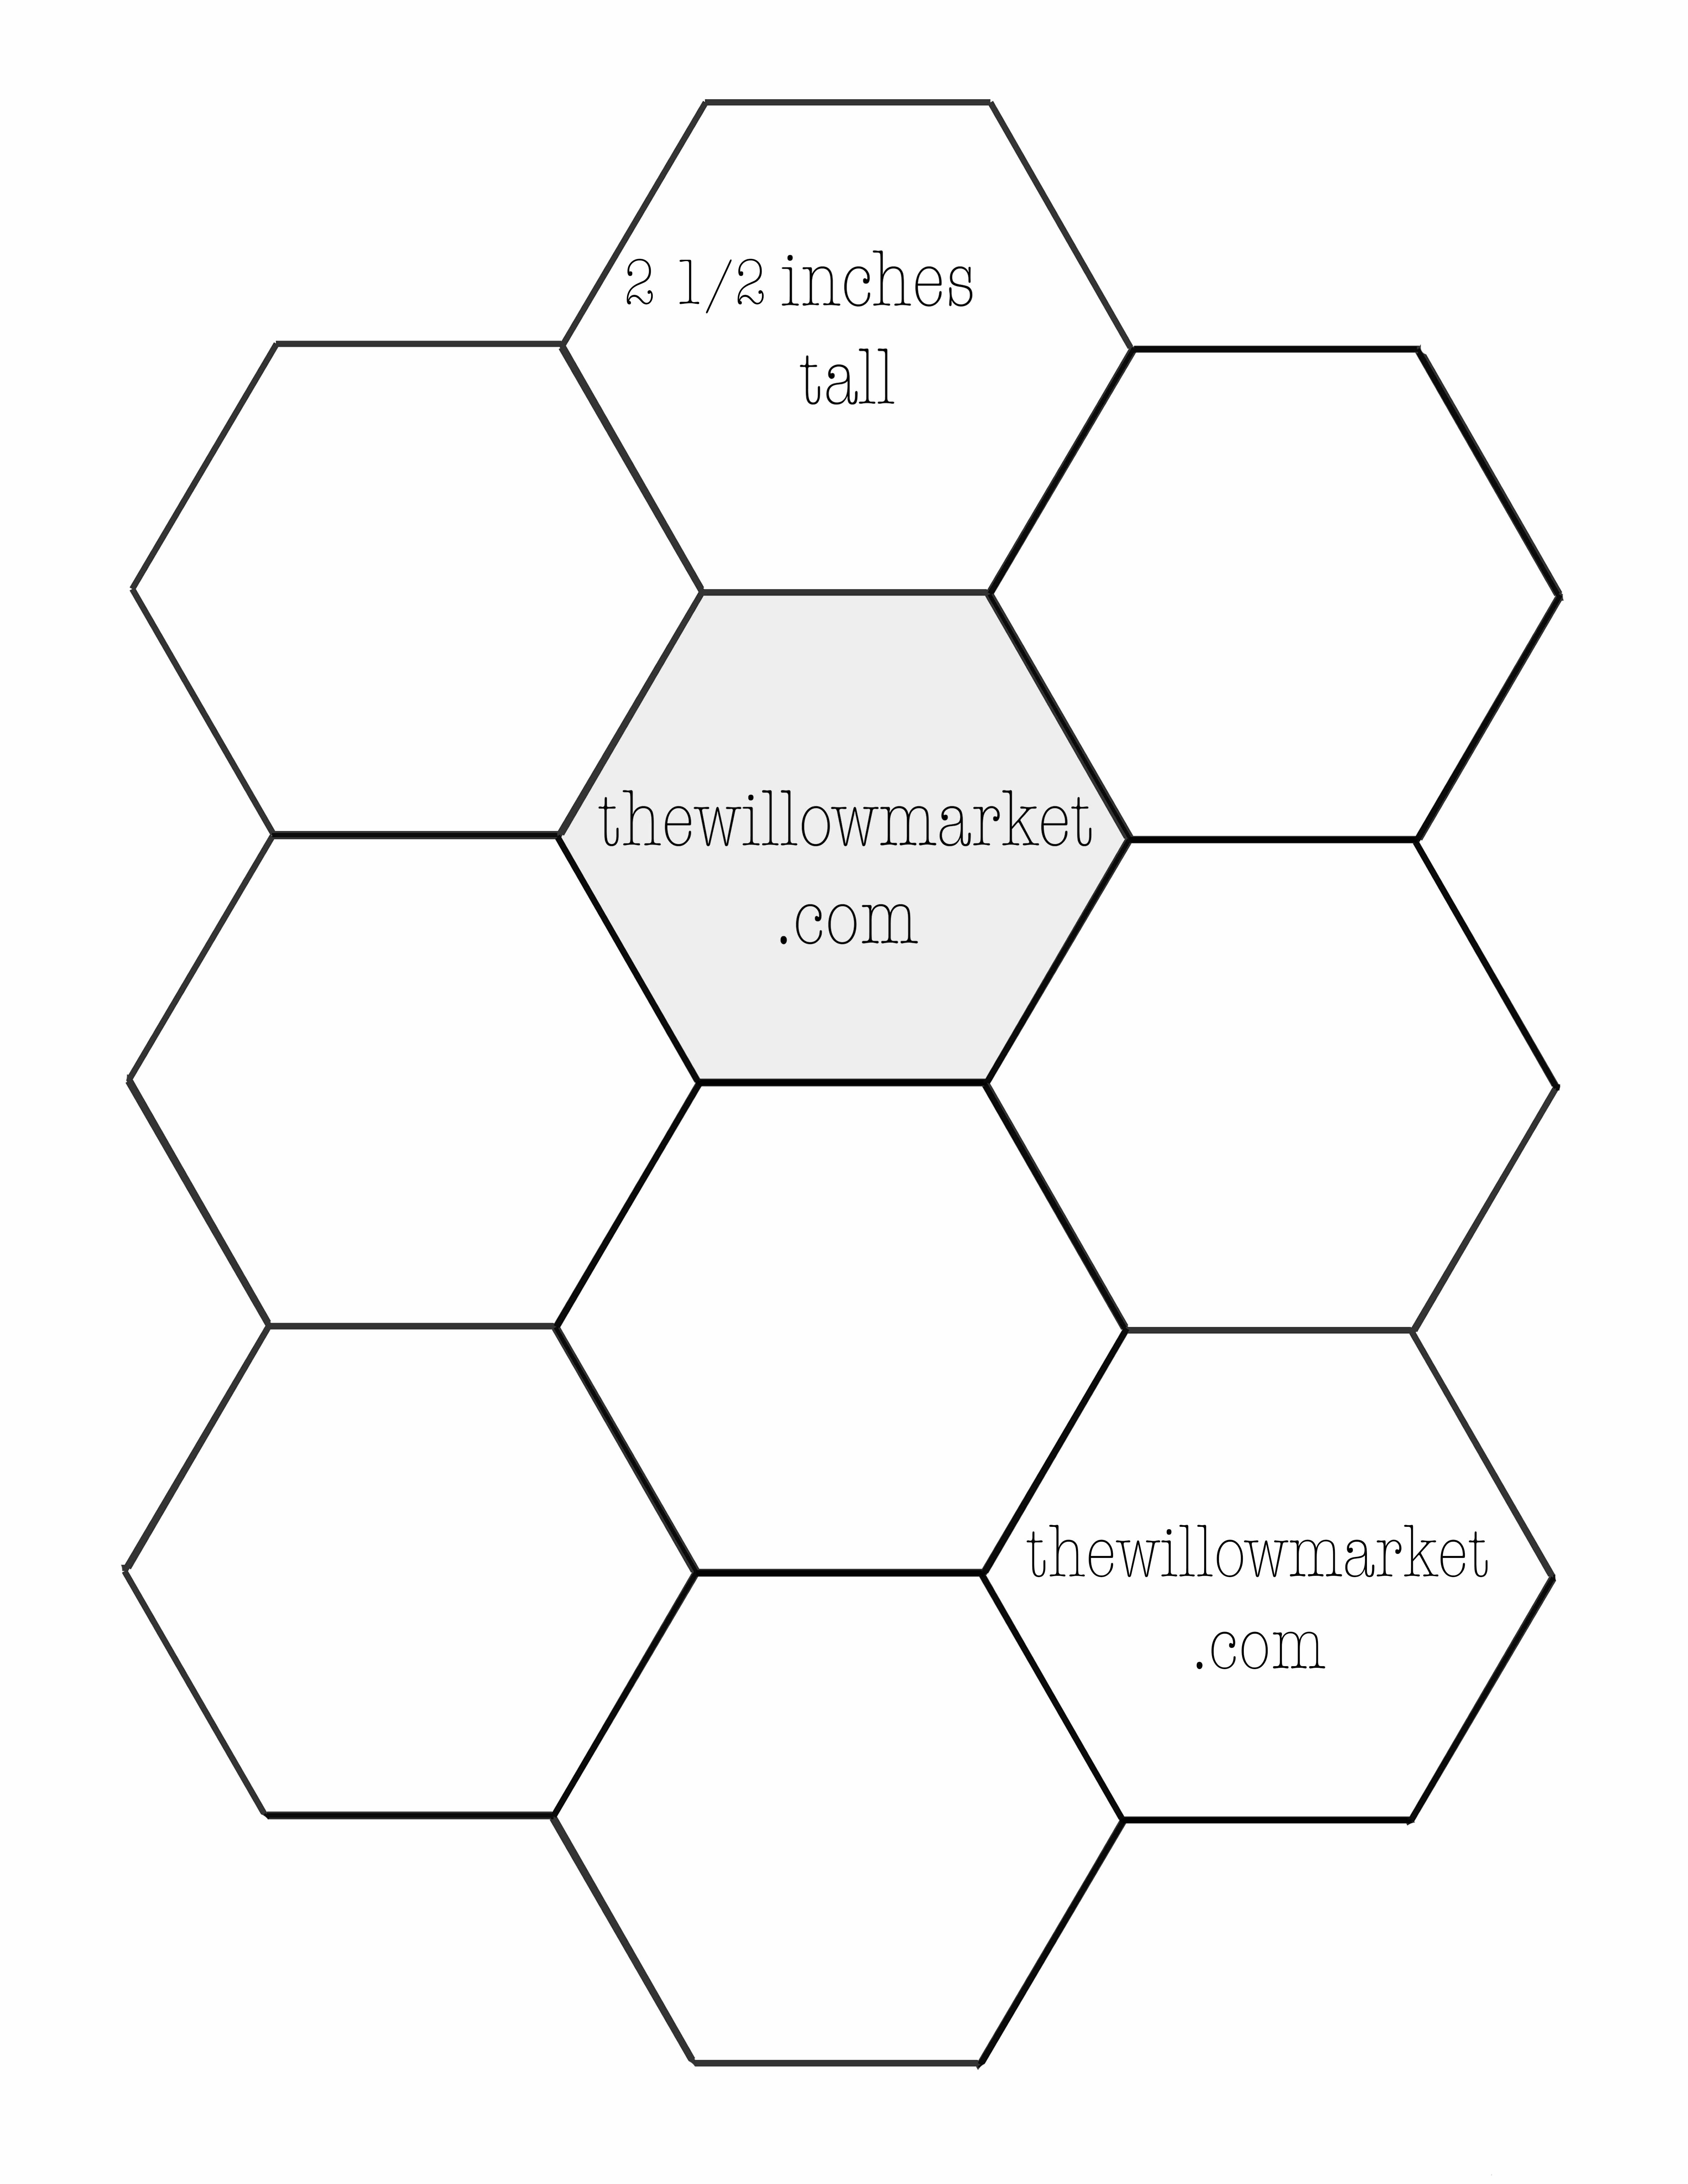 photo relating to Printable Hexagons titled 2 inch hexagon printable template